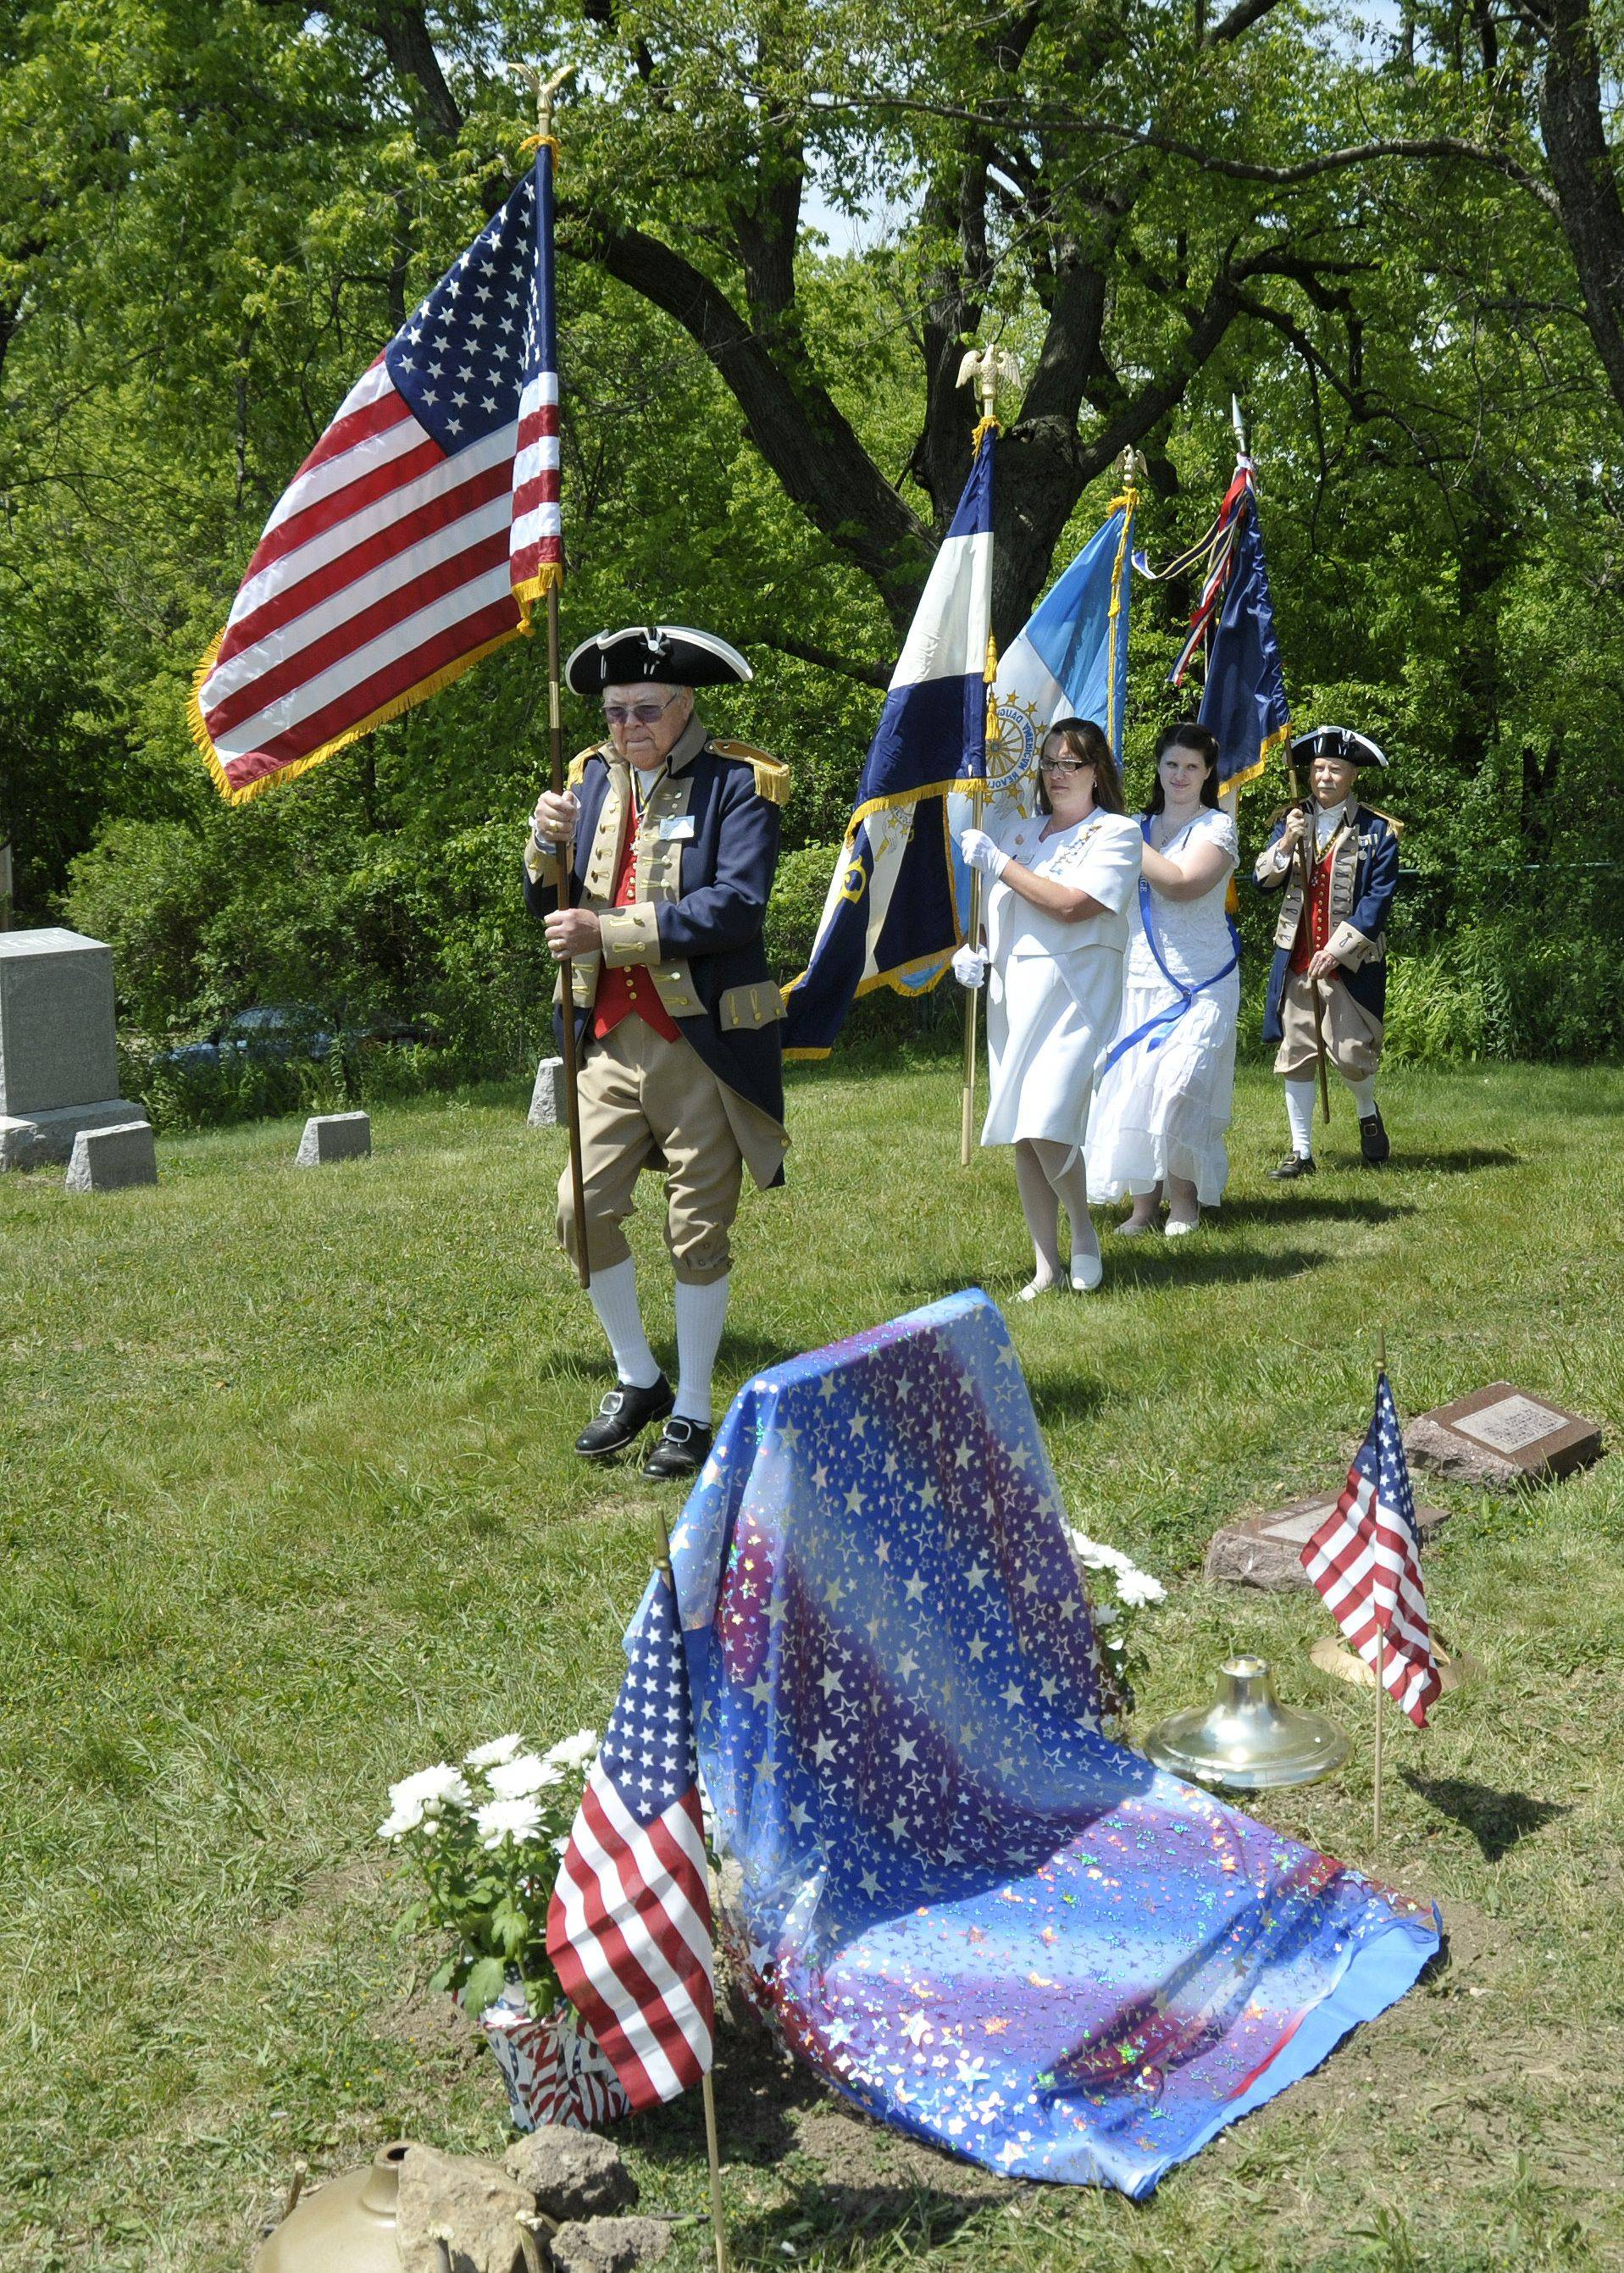 Rod Herbig from Lisle, Racheal Hughes from Zion, Amanda Burja from Long Grove and Don Parrish from Naperville bring the American, Daughters of the American Revolution and Sons of the American Revolution flags into the Mount Rest Cemetery in Wadsworth to begin the ceremony. Members of the Daughters of the American Revolution from Libertyville and Waukegan, and members of the Sons of the American Revolution from Lisle and Naperville honored Revolutionary War soldier Henry Collins Friday at his gravesite in Wadsworth.